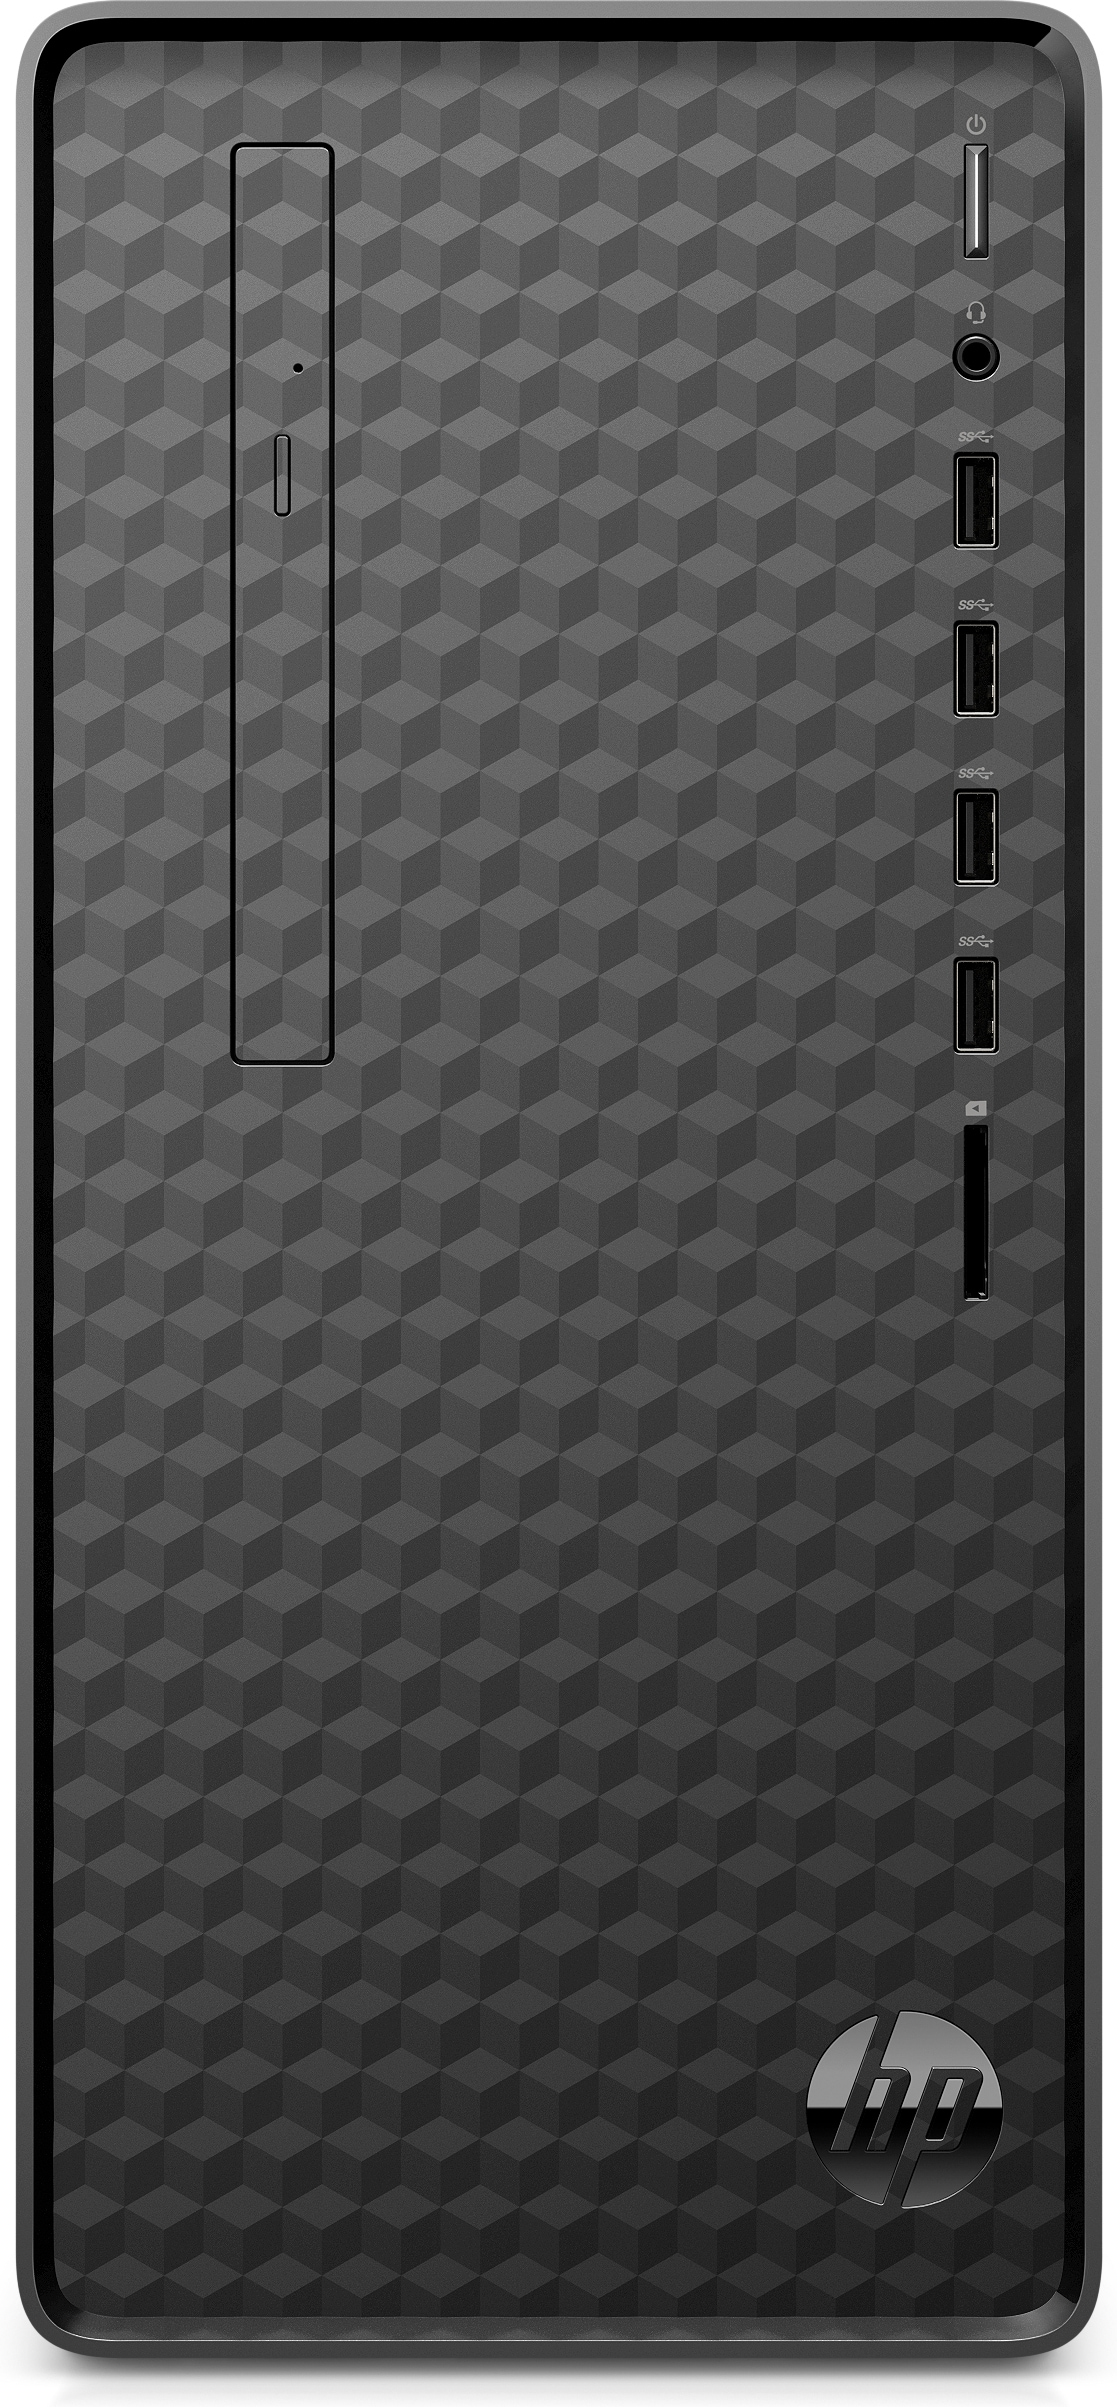 HP Desktop M01-F0001ng black